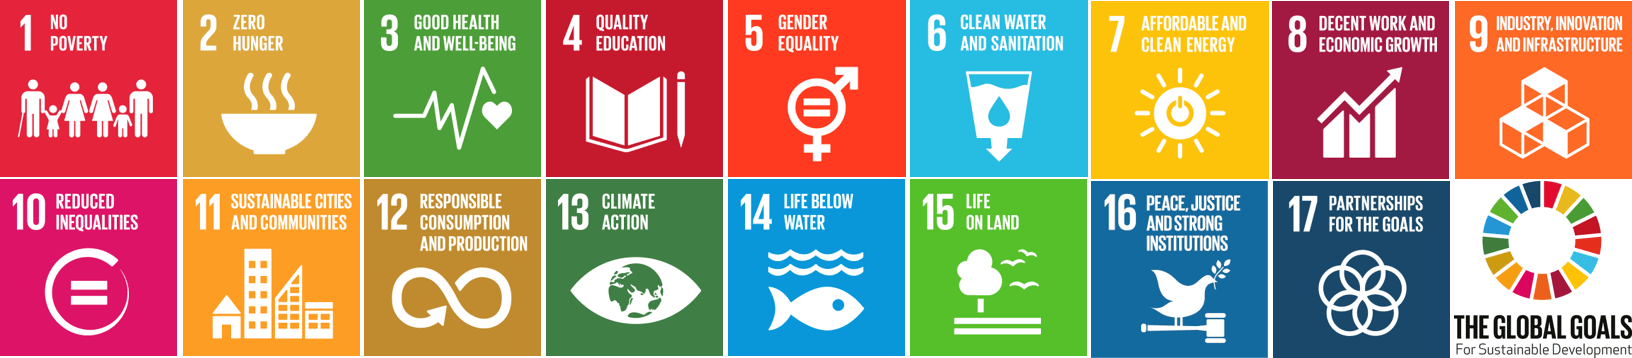 The Global Goals: 1 No poverty 2 Zero hunger 3 Good health and wellbeing 4 Quality education 5 Gender equality 6 Clean water and sanitation 7 Affordable and clean energy 8 Decent work and economic growth 9 Industry, innovation and infrastructure 10 Reduced inequalities 11 Sustainable cities and communities 12 Responsible consumption and production 13 Climate action 14 Life below water 15 Life on land 16 Peace, justice and strong instiutions 17 Partnerships for the goals.